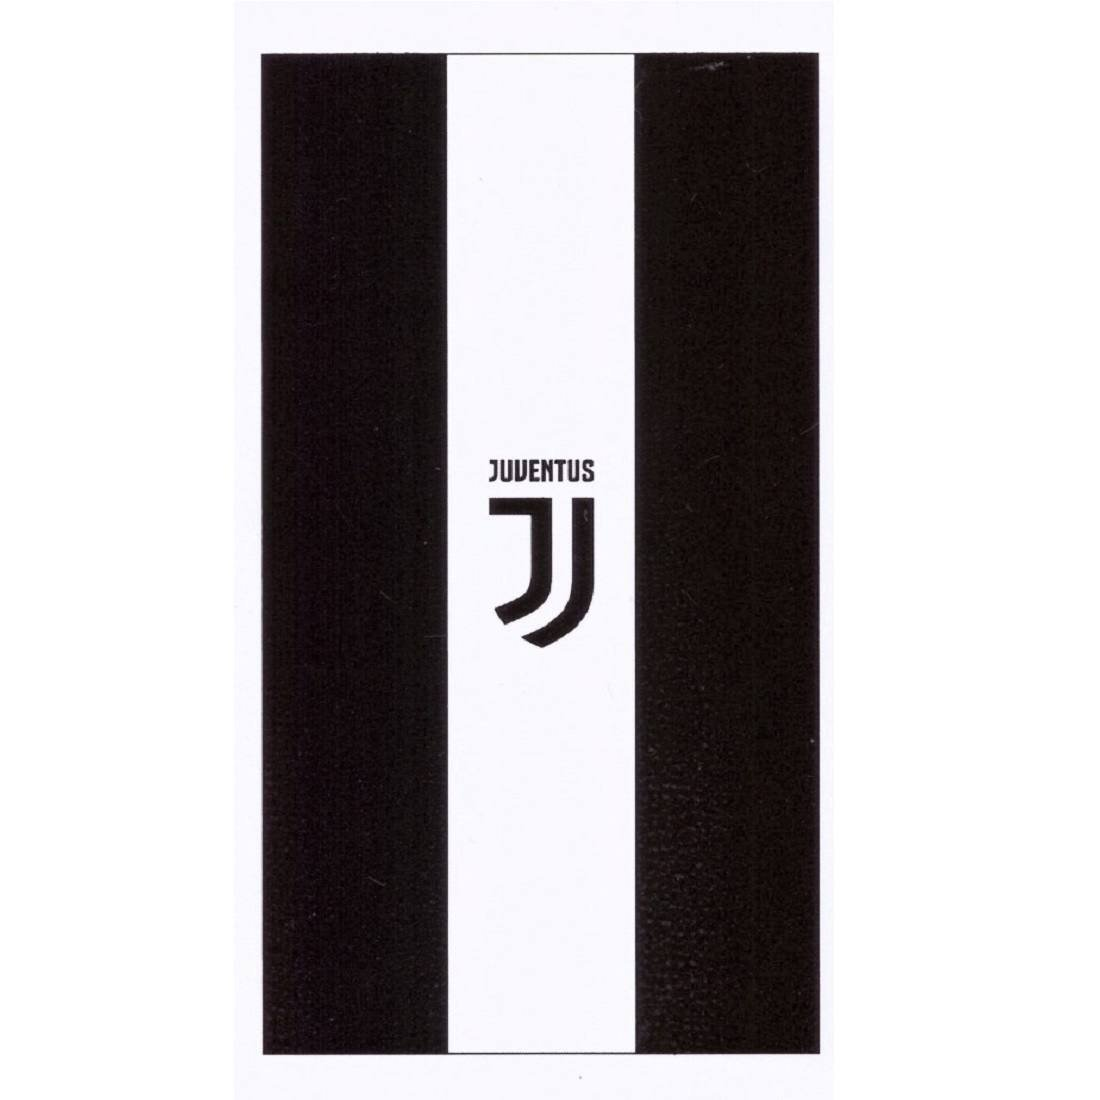 Juventus Cotton Towel with Logo 70 x 140 cm HERMET